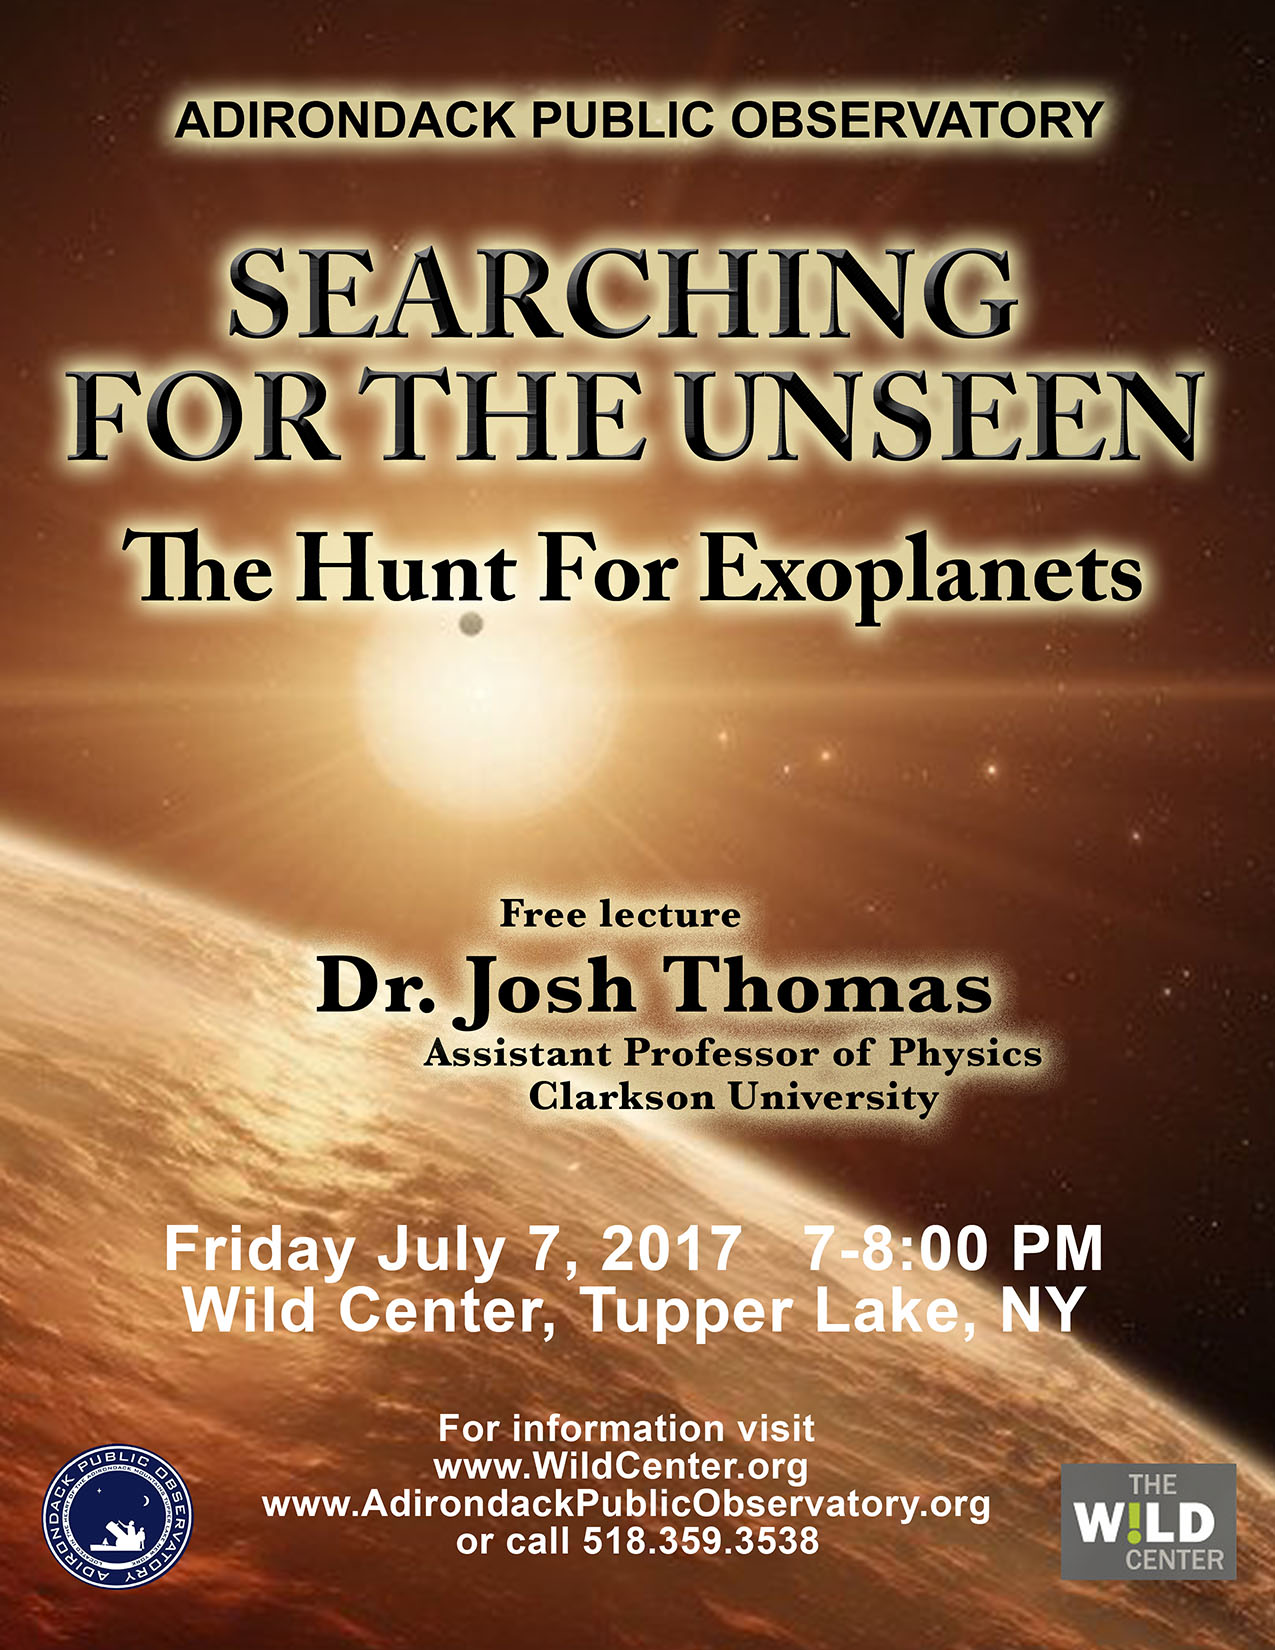 Lecture: Dr. Joshua Thomas